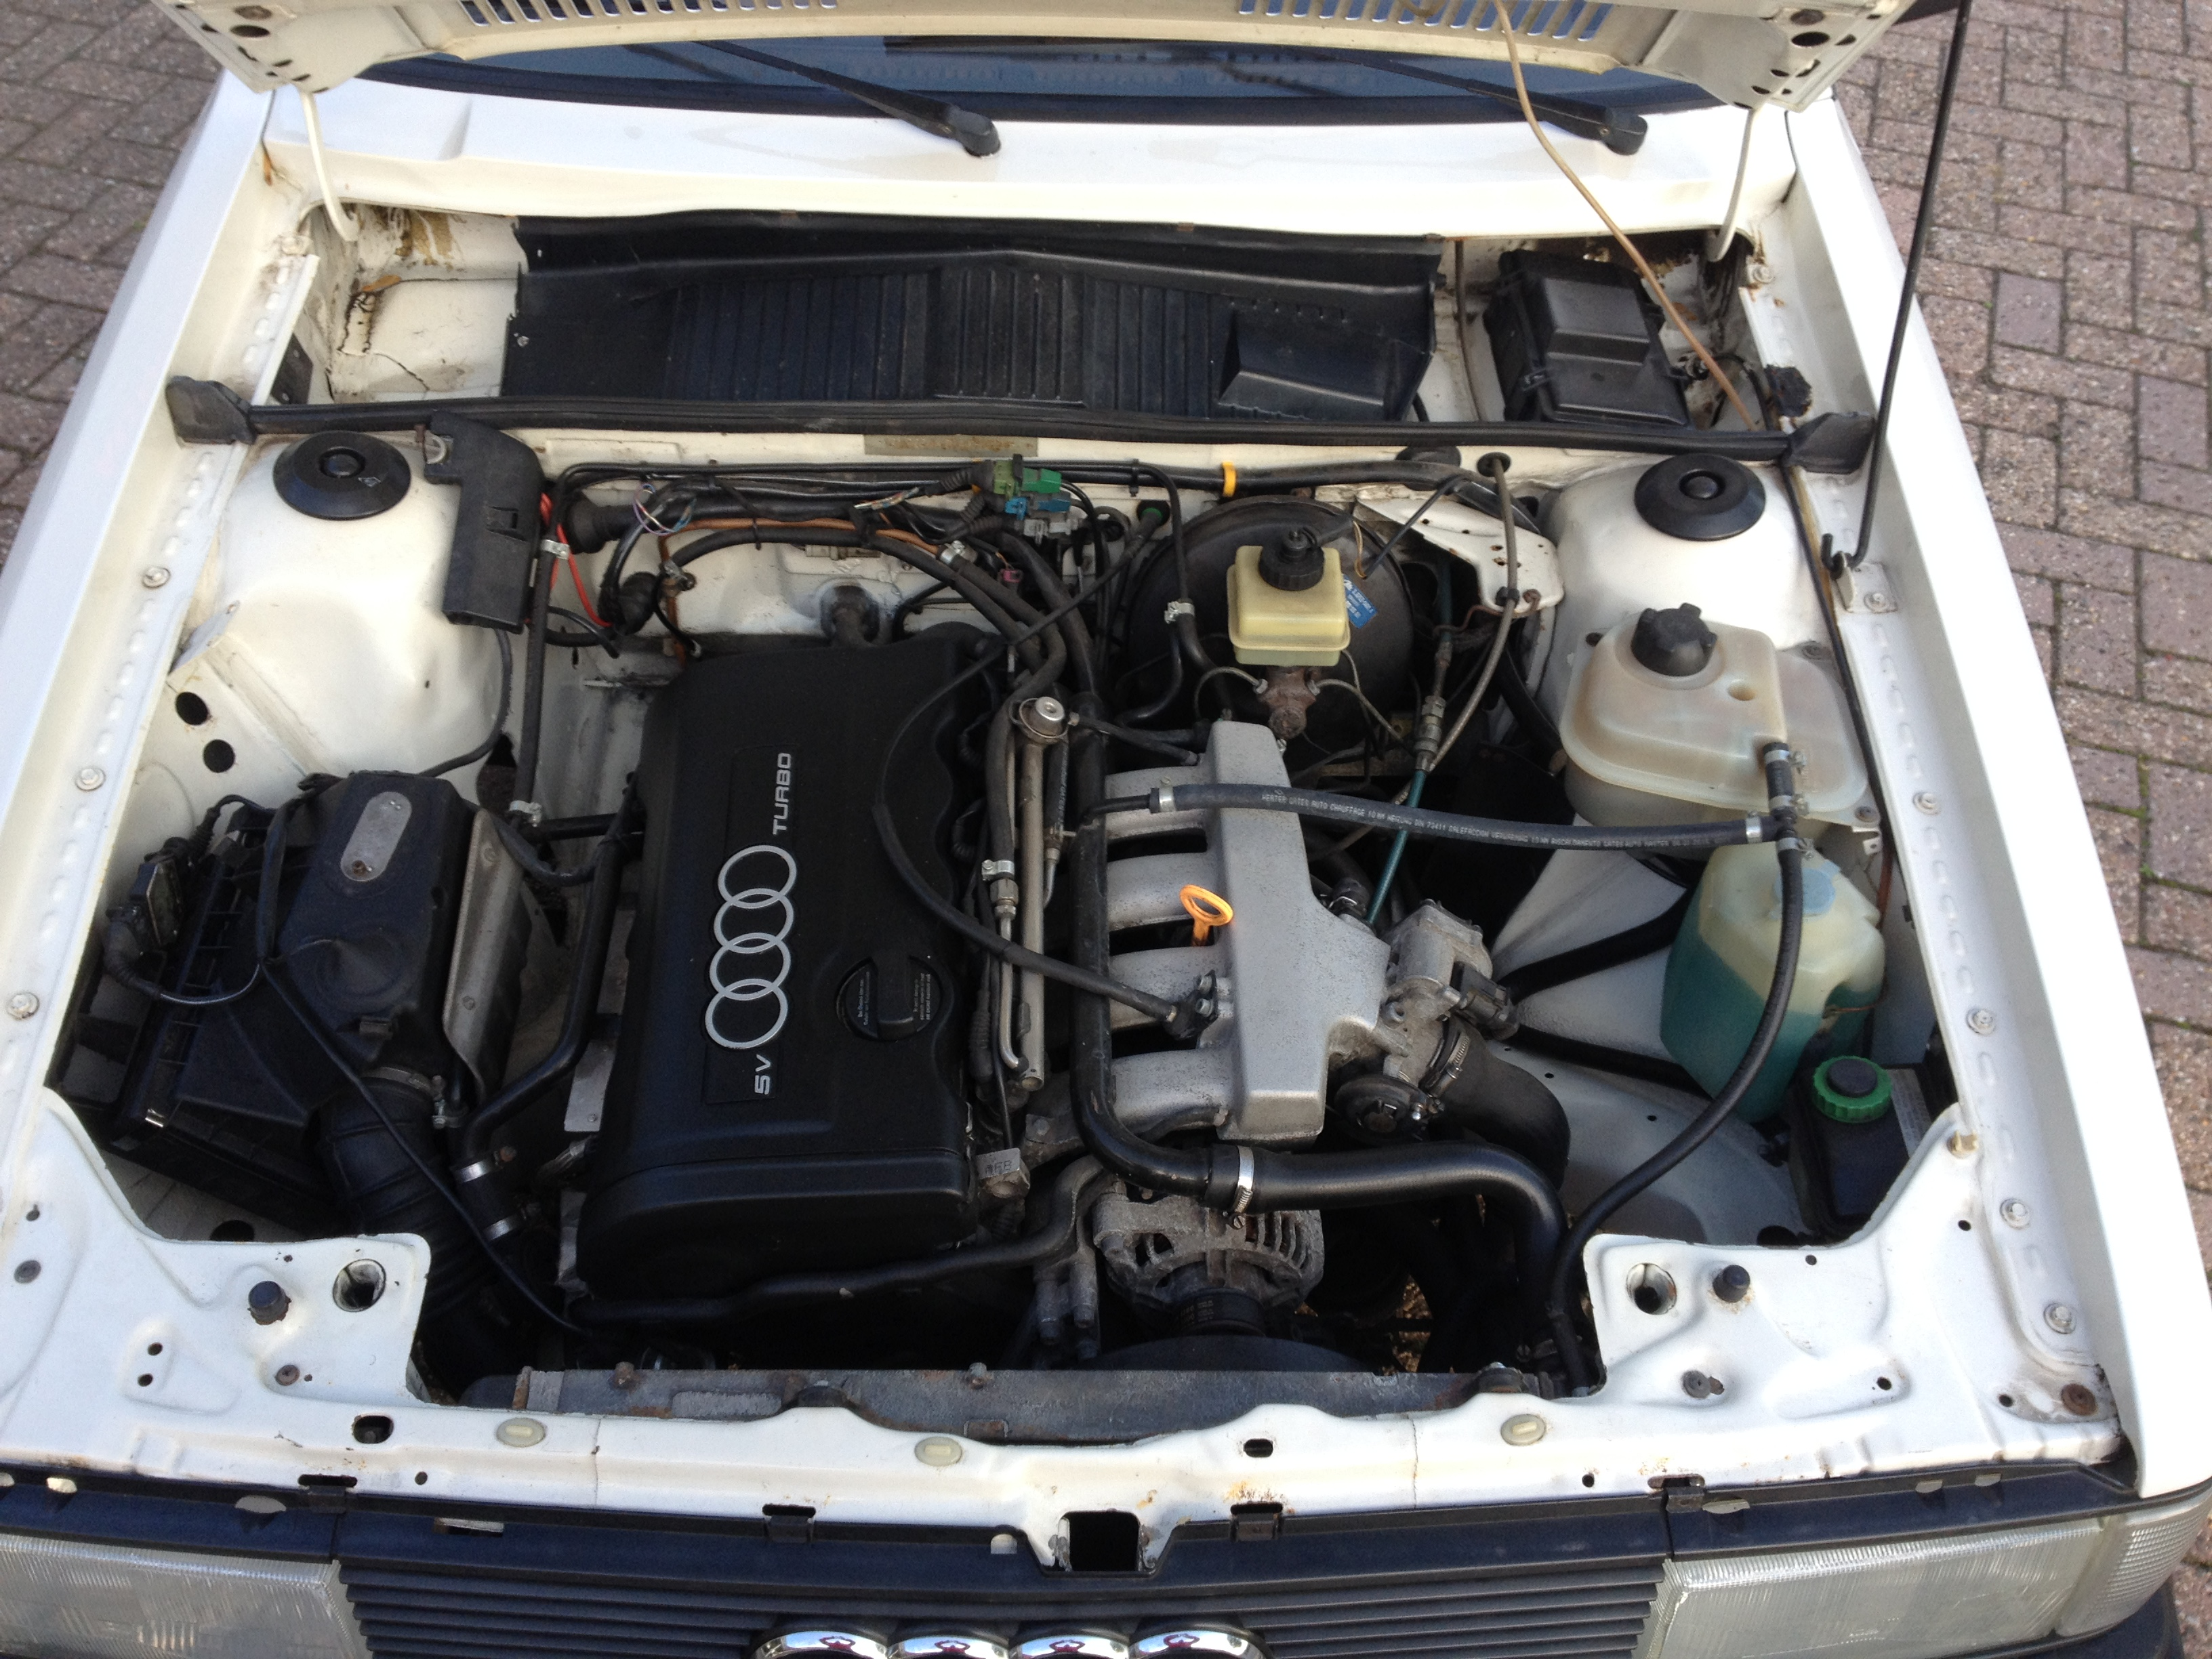 Audi 80 B2 1 8 20V turbo engine swap olschool tuning JMSpeedshop com